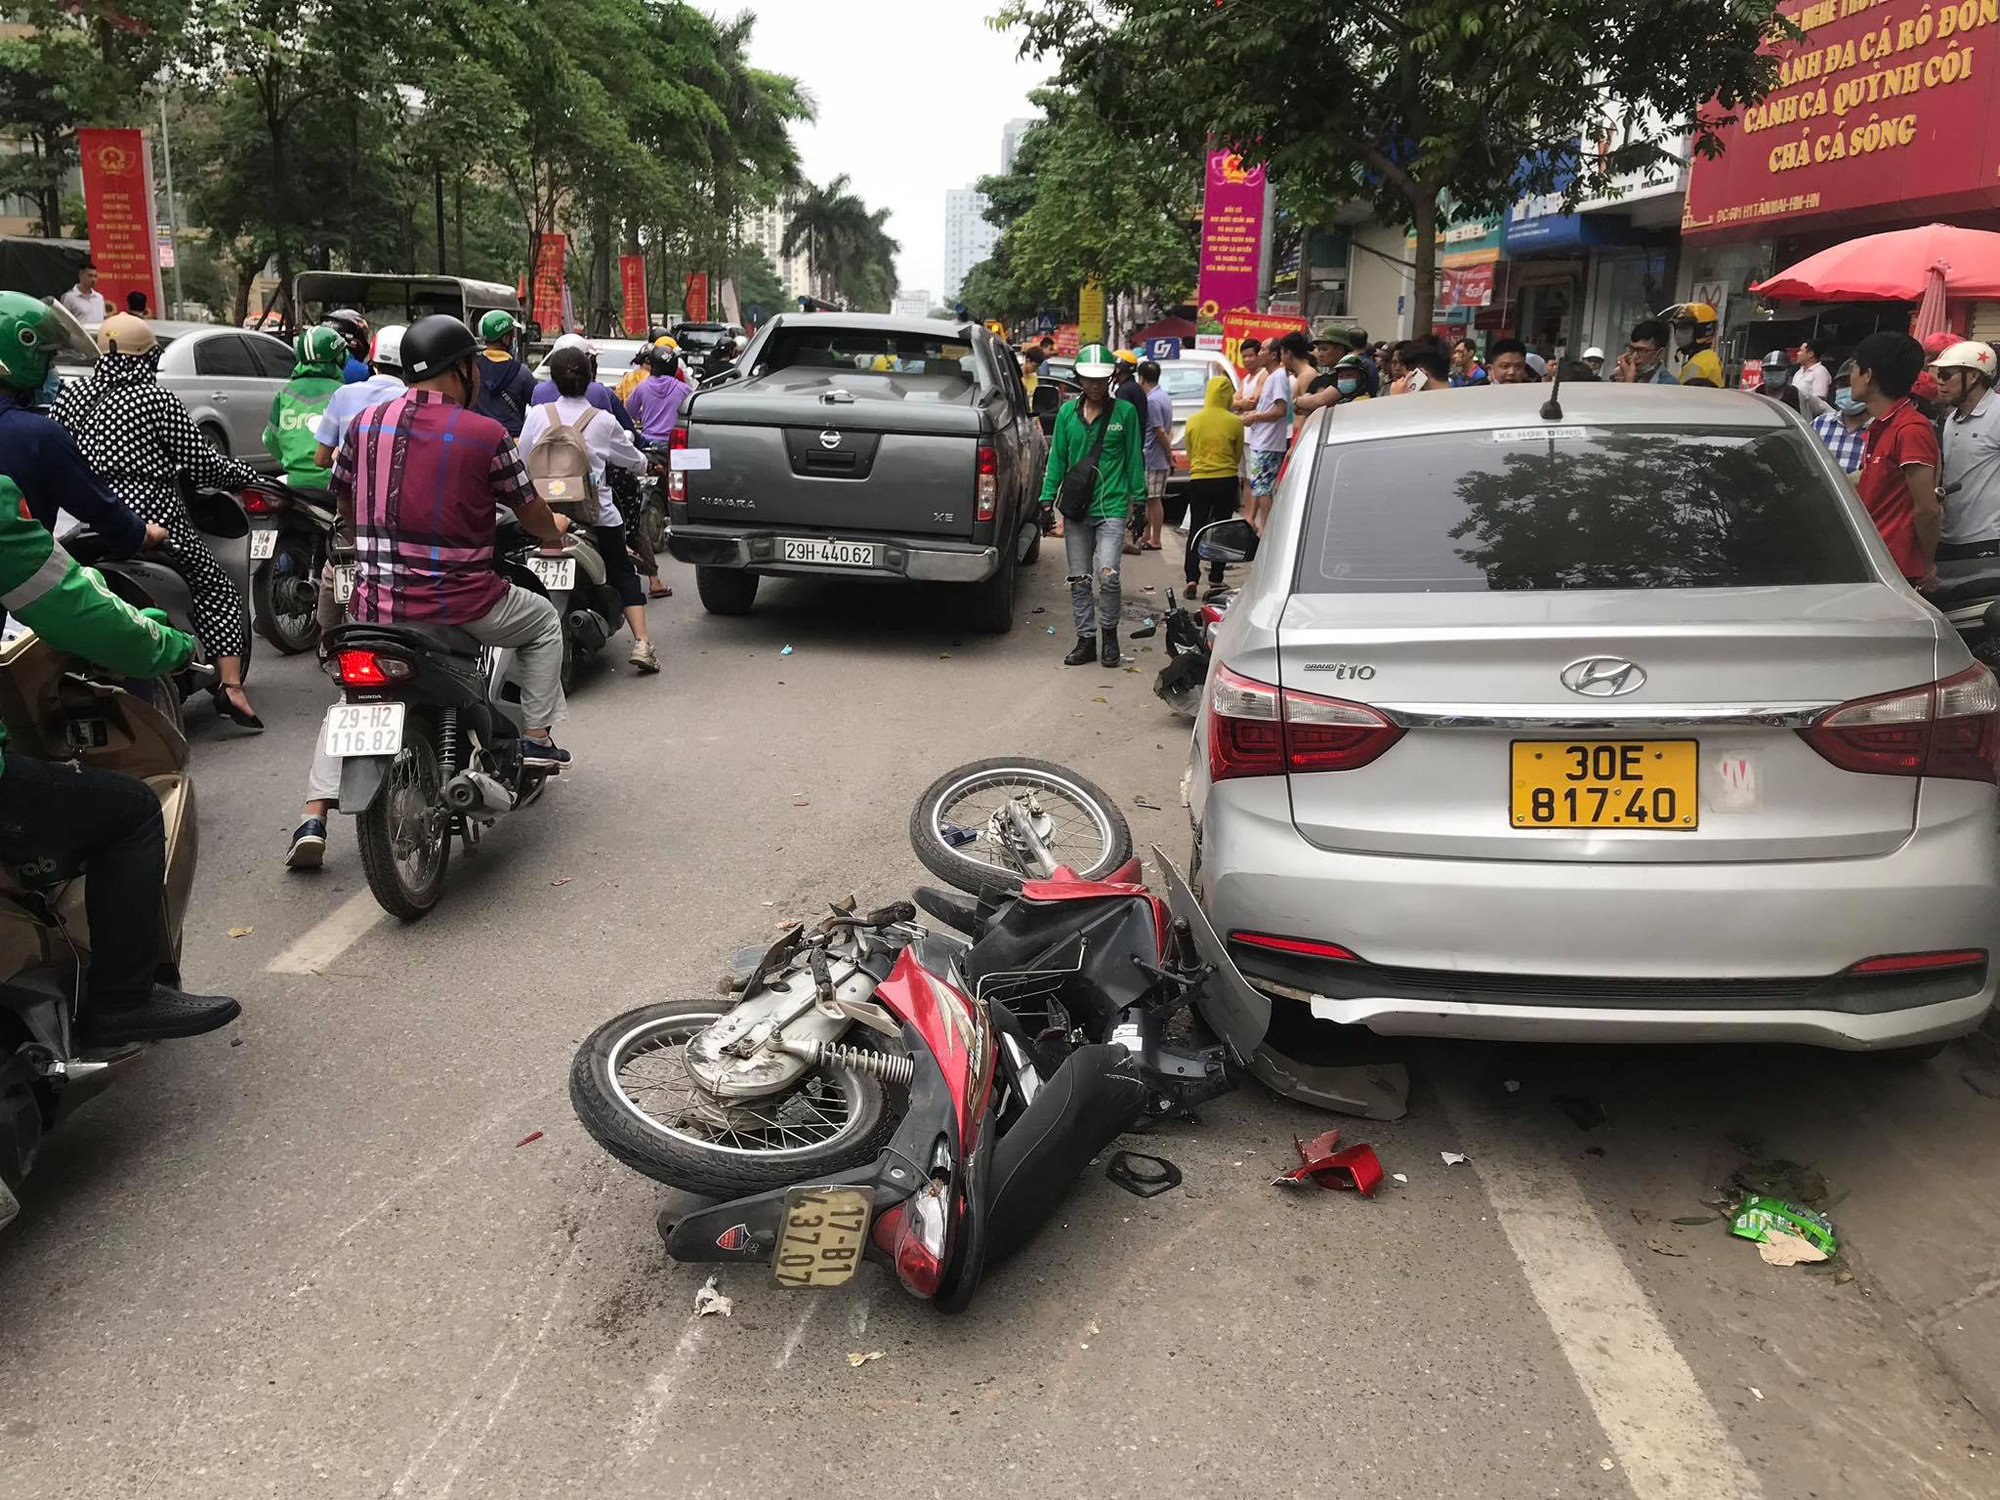 The site of a road crash involving a pickup truck, three cars, and two motorbikes in Hanoi, April 24, 2021. Photo: Trung Khanh / Tuoi Tre